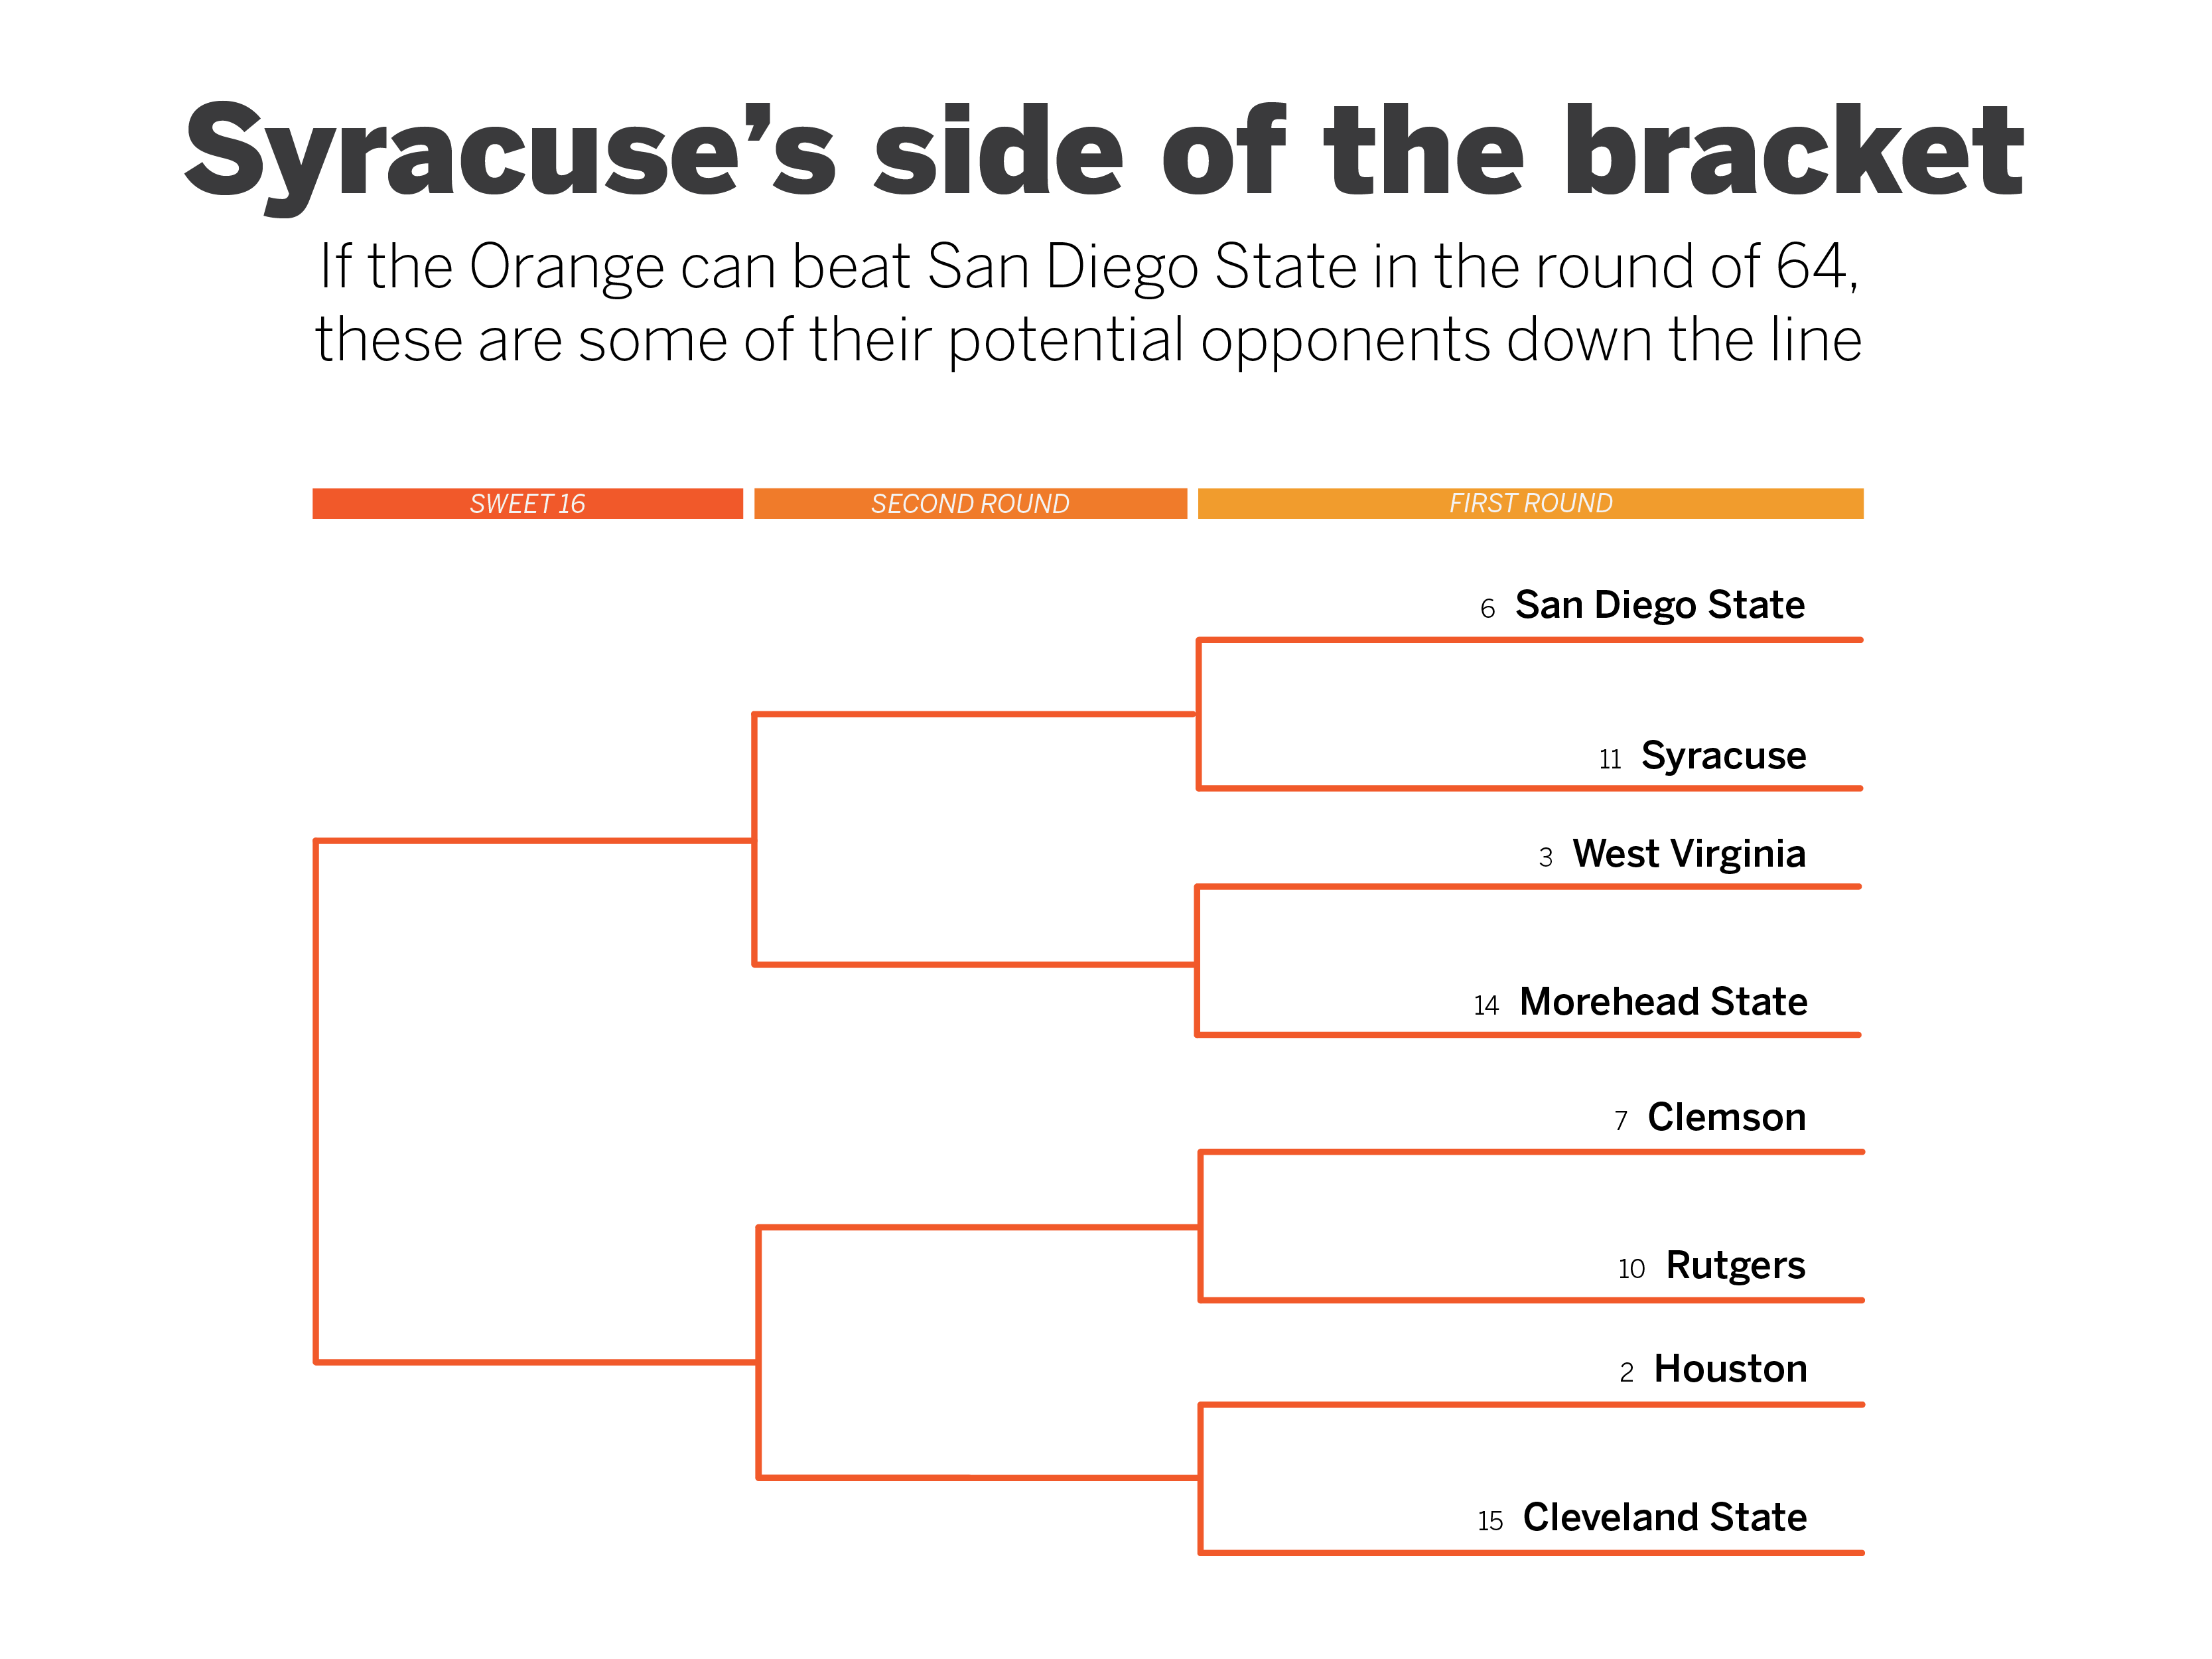 Graphic showing Syracuse's side of the NCAA Tournament bracket.